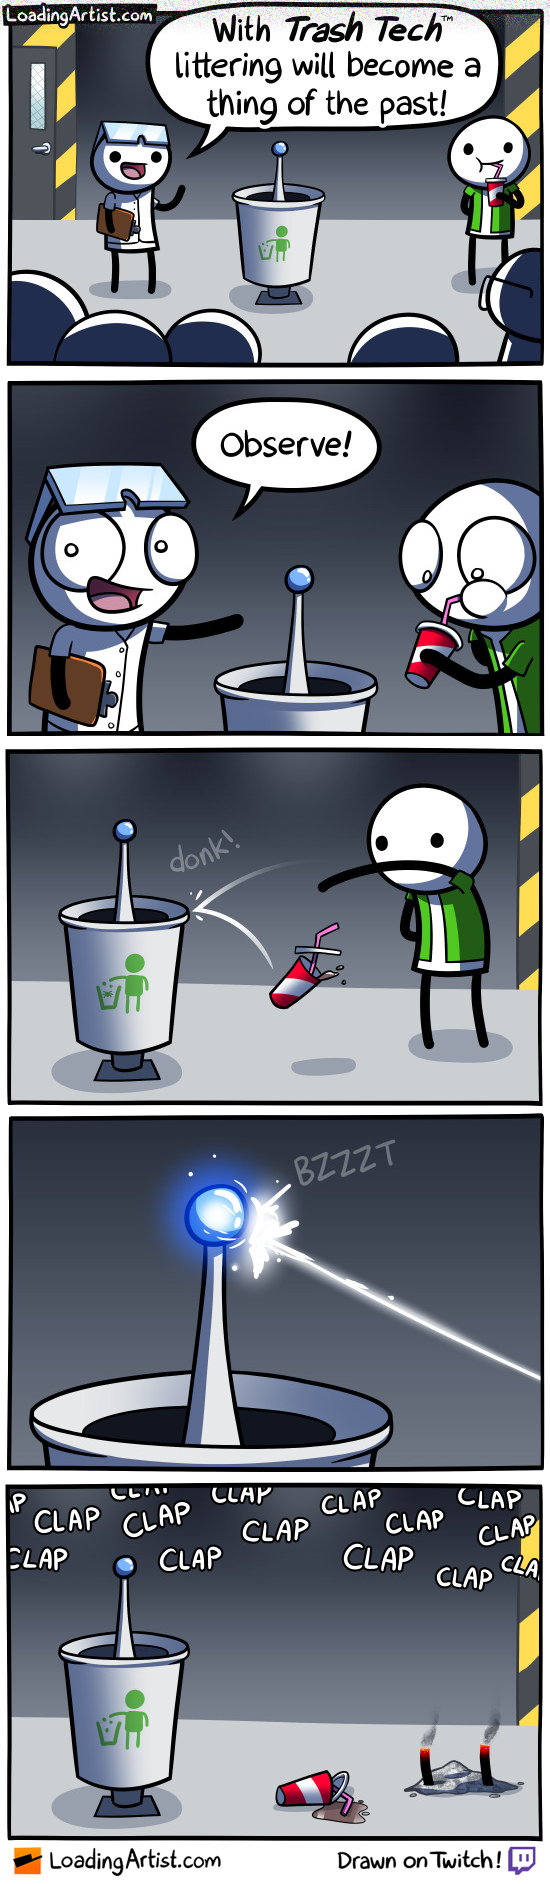 Ultimate solution to littering!